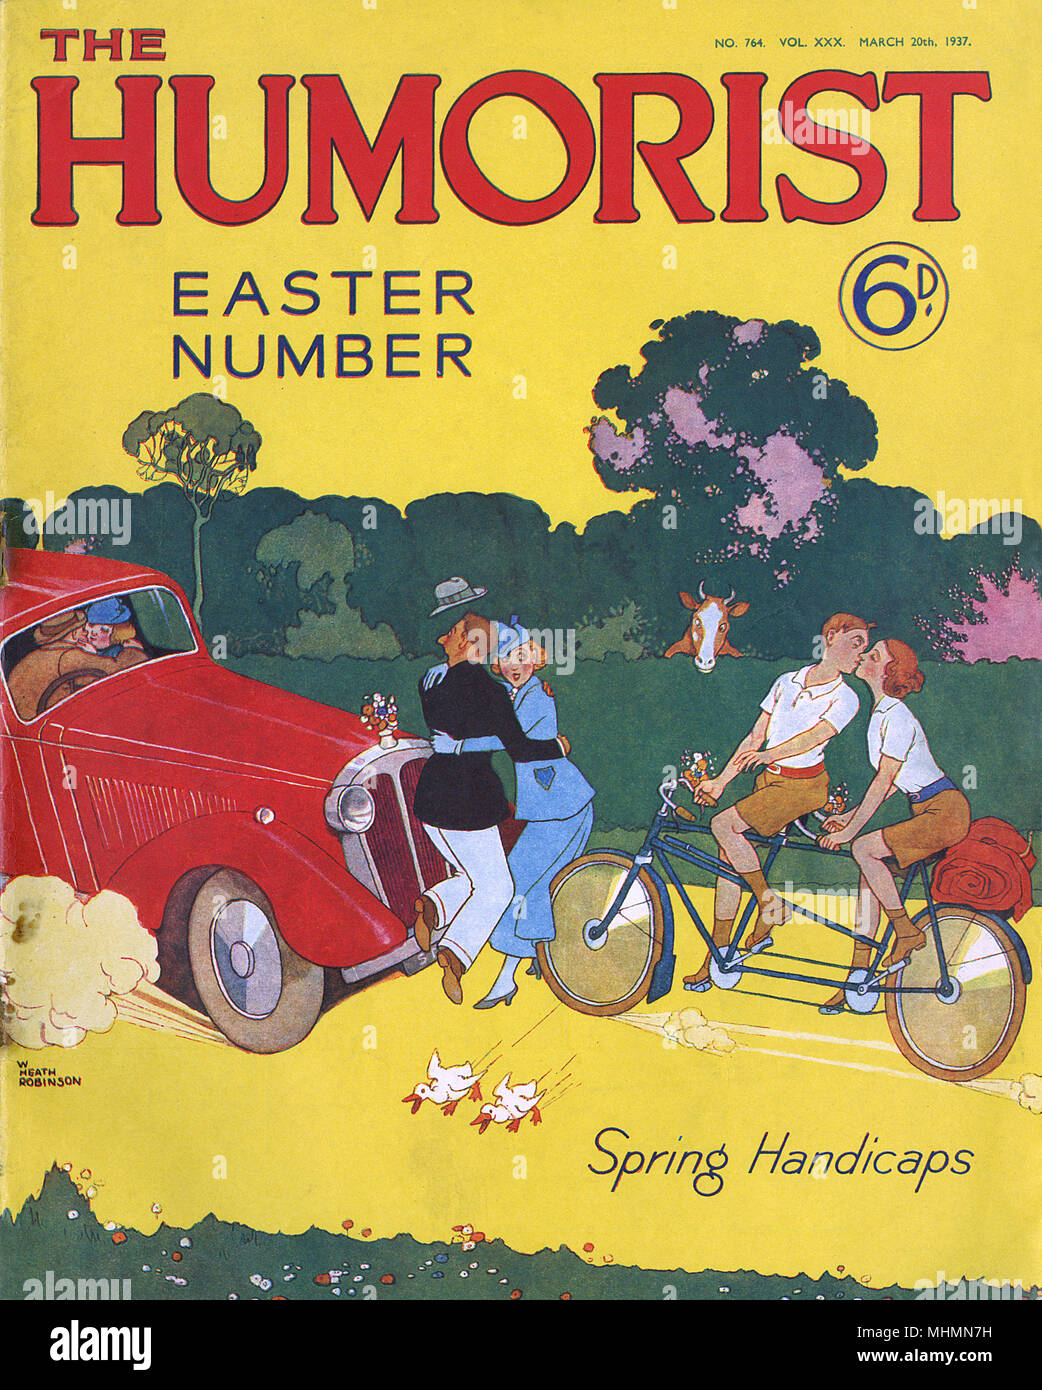 Spring Handicaps.  Front cover of The Humorist magazine featuring a glorious cartoon by William Heath Robinson showing the chaos created on the roads by spring romances.       Date: 1937 - Stock Image